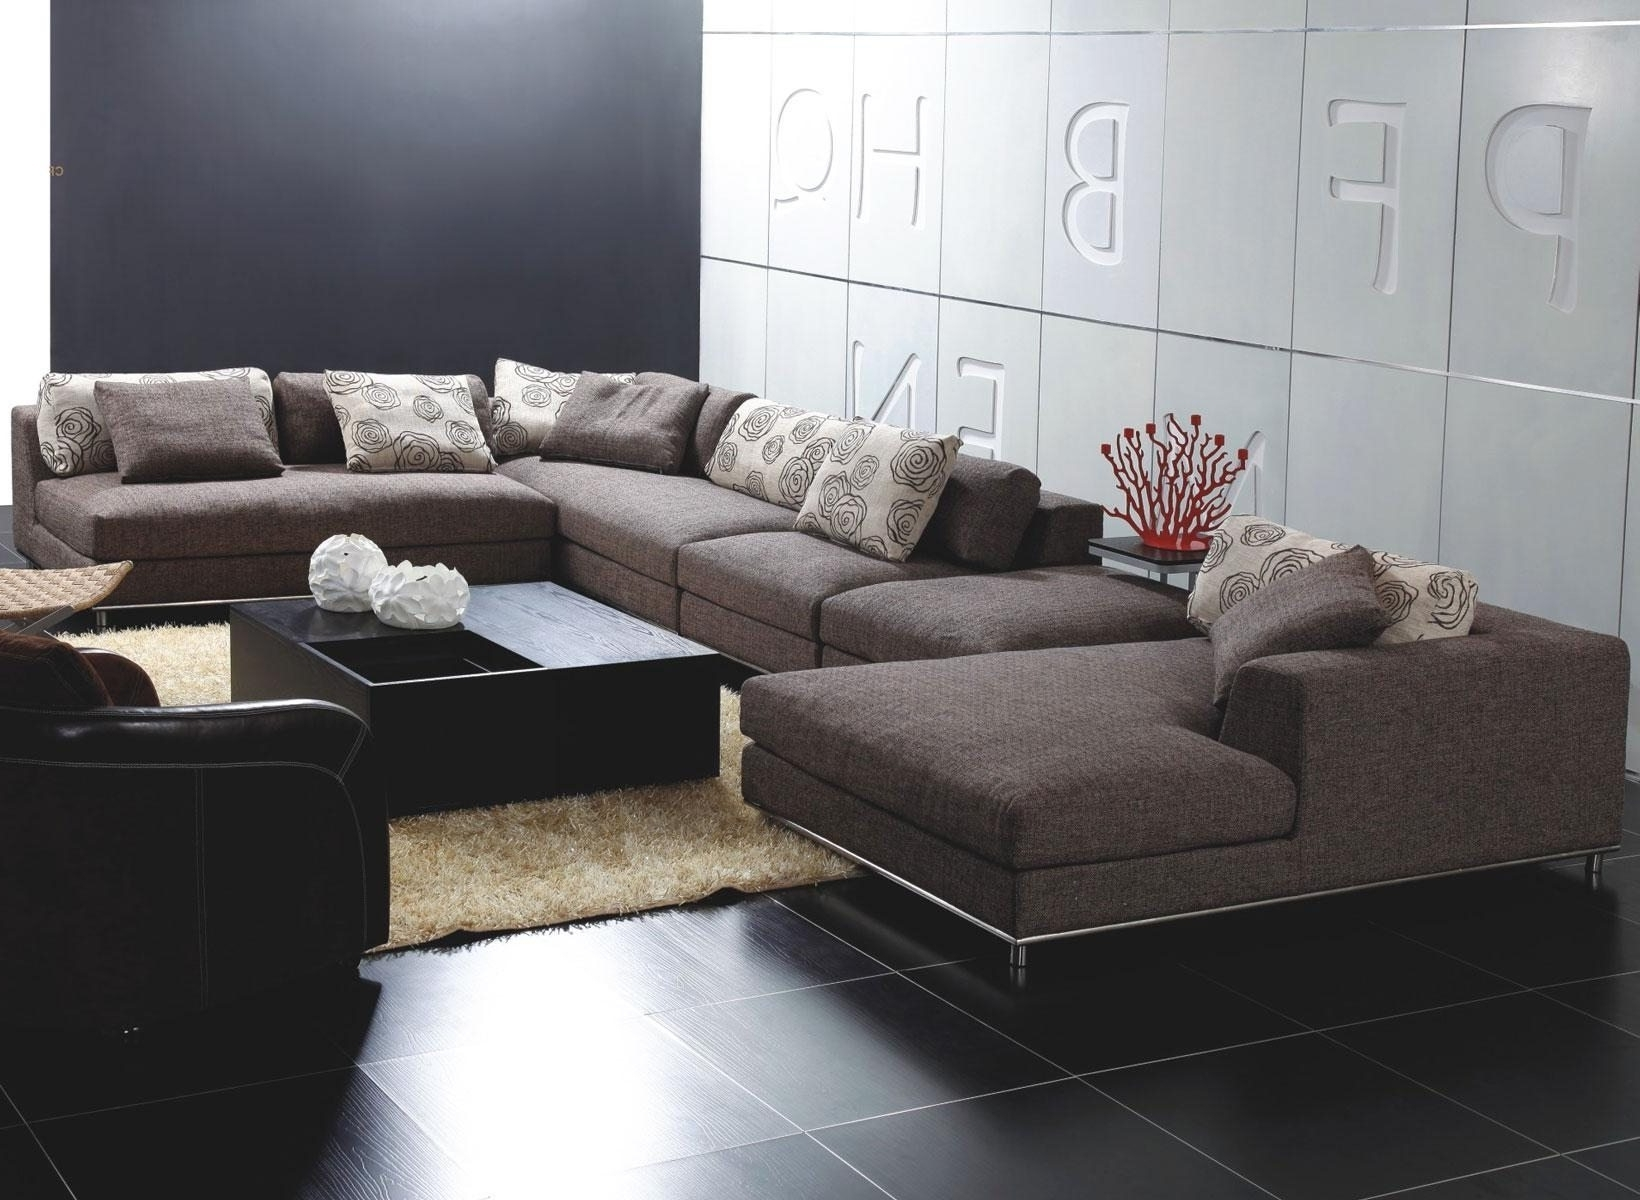 Berkline Sectional Sofas Inside 2019 Ideas For Disassemble A Berkline Sectional — Umpquavalleyquilters (View 4 of 20)